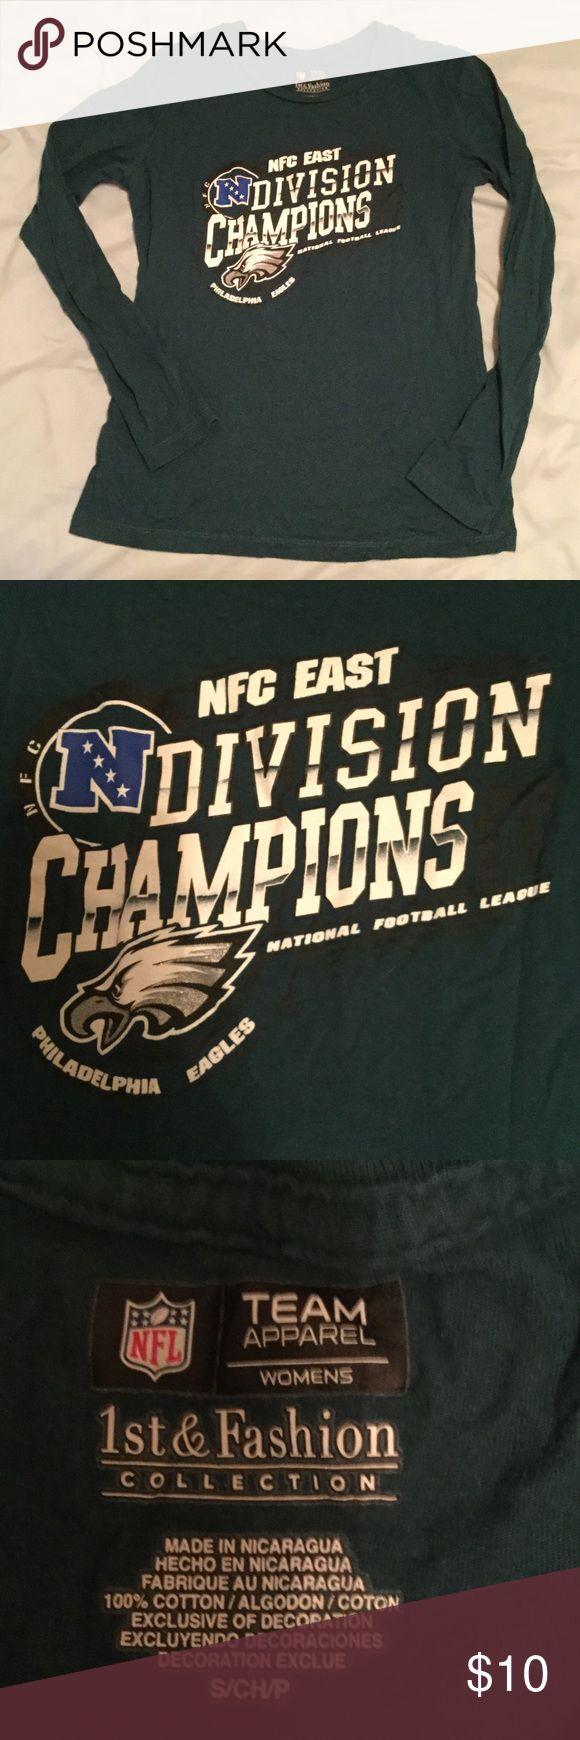 EAGLES NFC east champs shirt 😻👍🏻 Eagles NFC East Division Champions Long Sleeve Shirt. Official NFL Team Apparel. Size Small. Women's. LIKE NEW. NFL Team Apparel Tops Tees - Long Sleeve